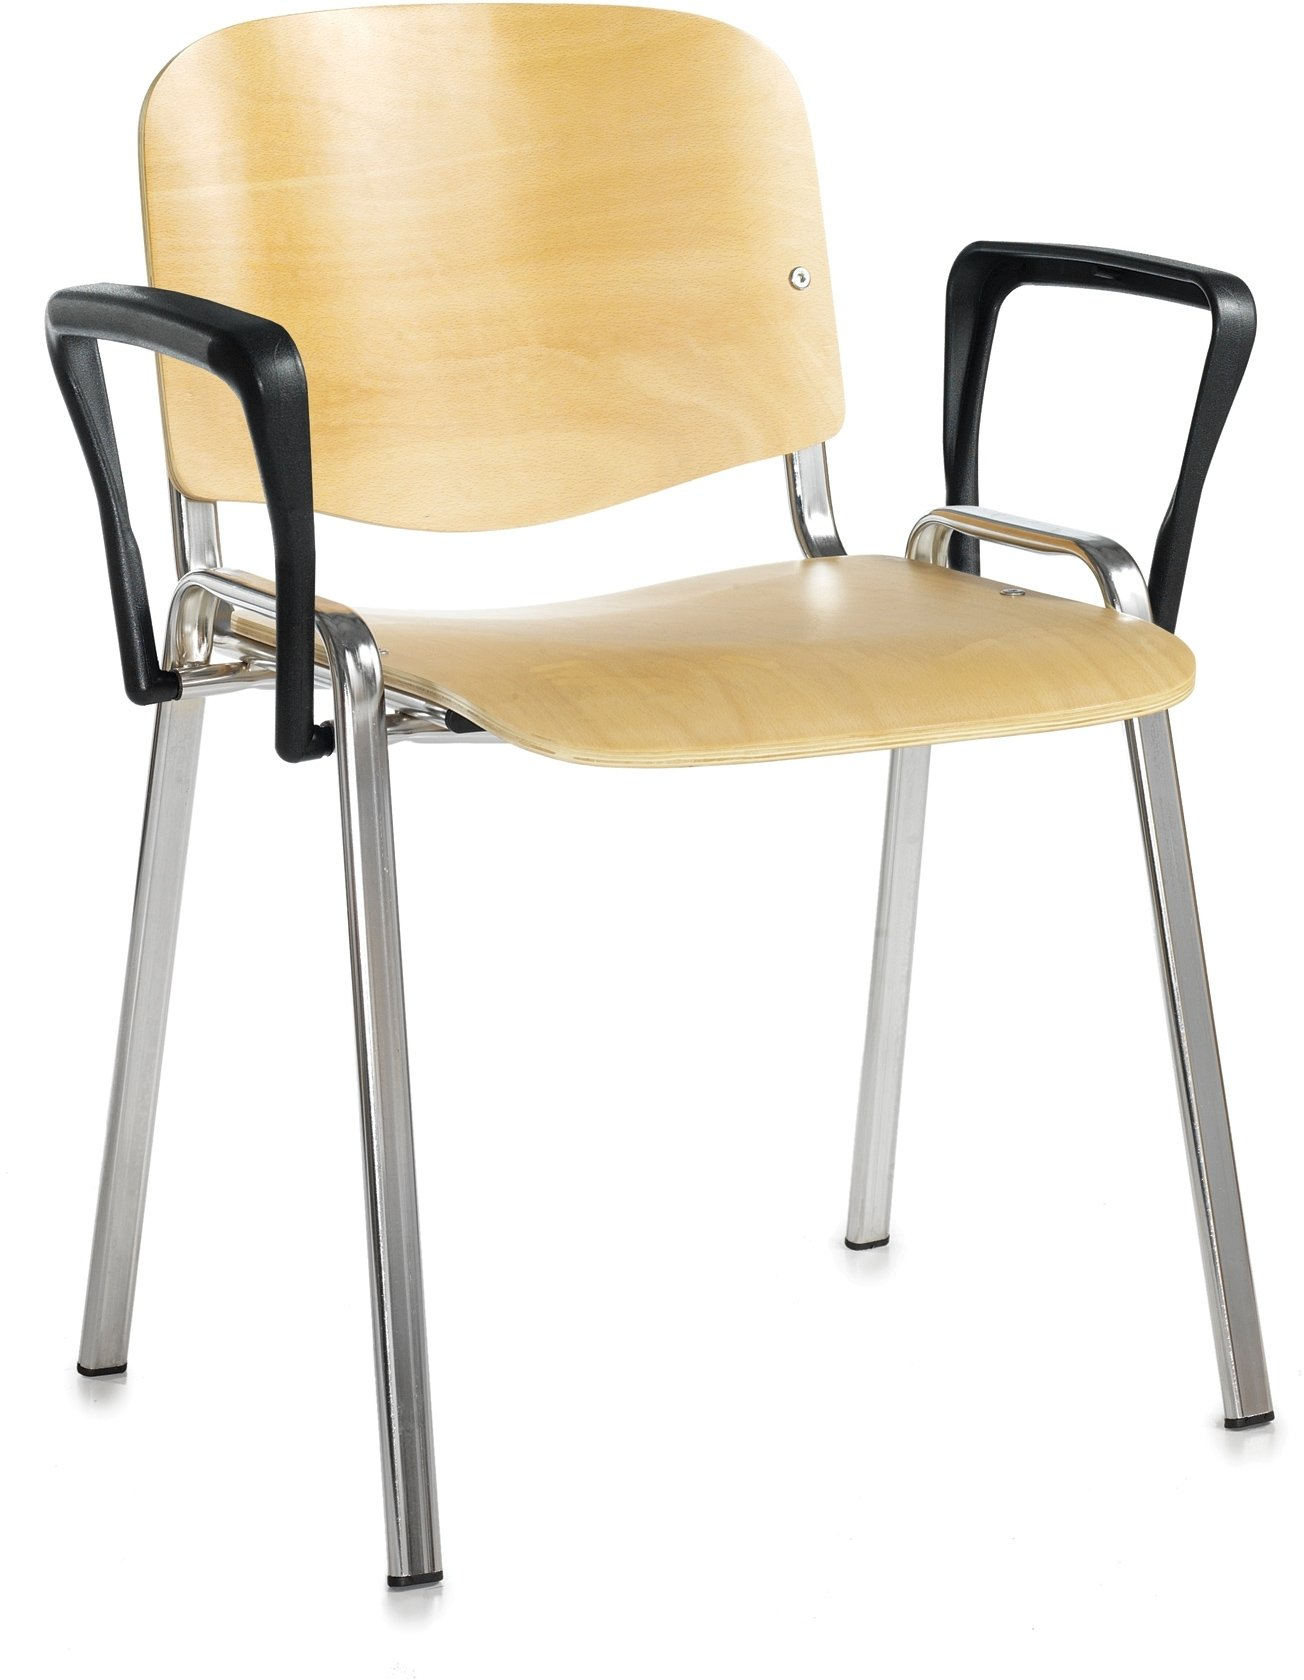 Taurus wooden stacking chair with arms price per box of